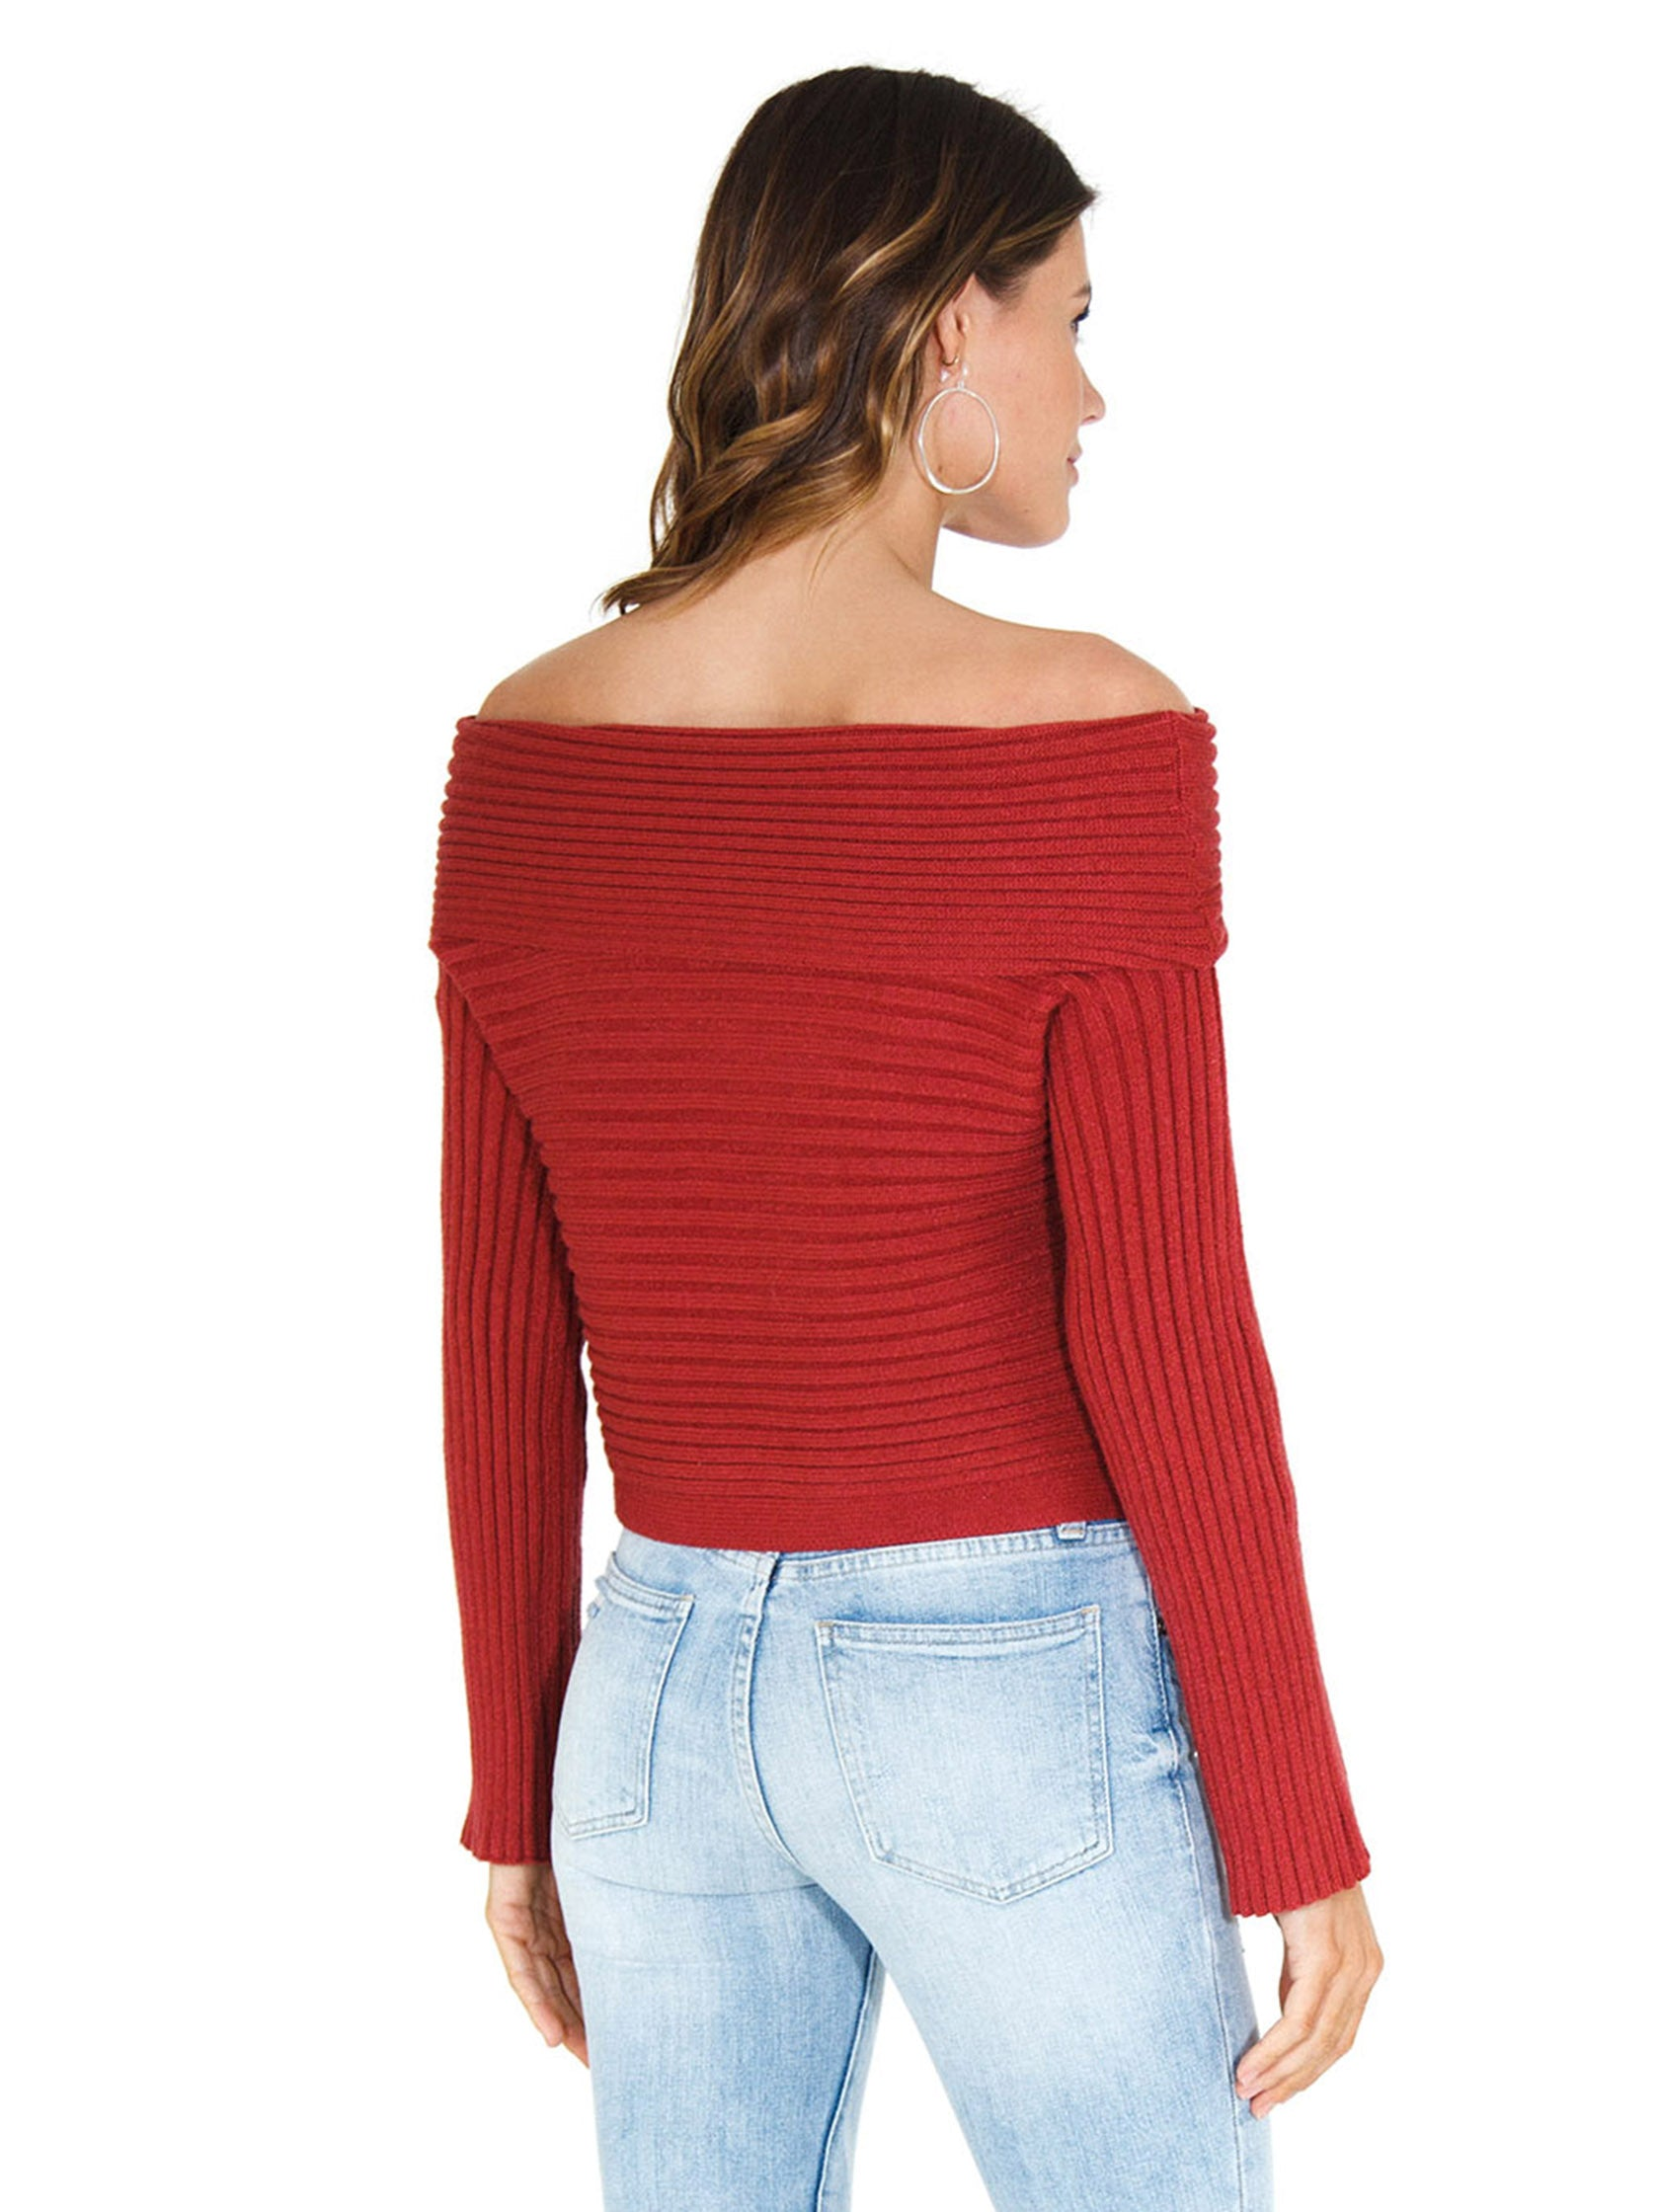 Women outfit in a sweater rental from Line & Dot called Benigna Off Shoulder Sweater